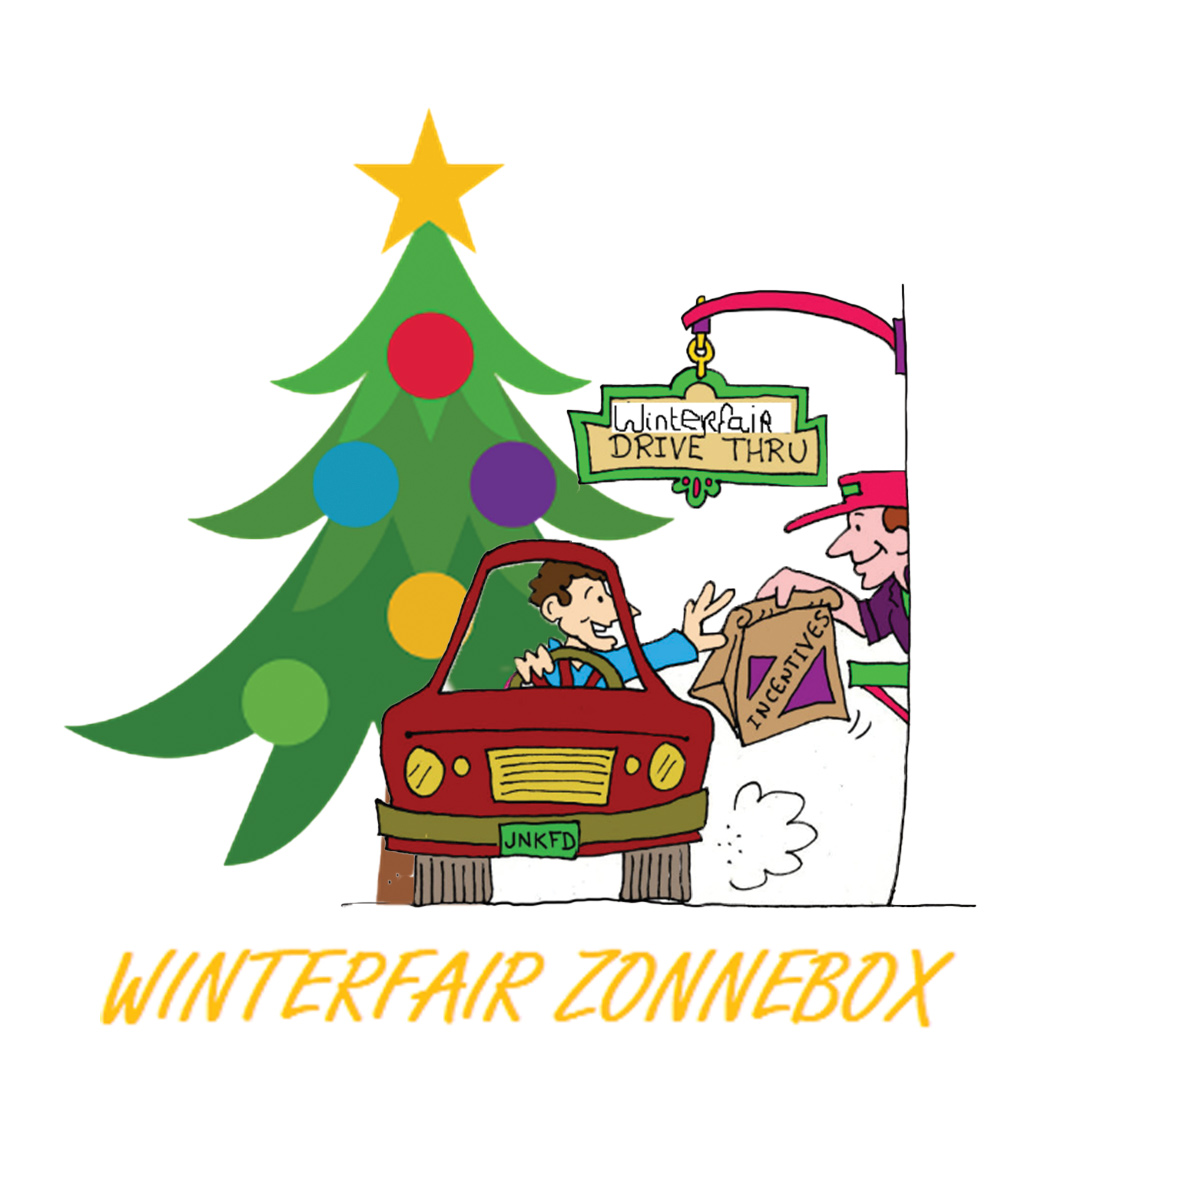 Winterfair Zonnebox